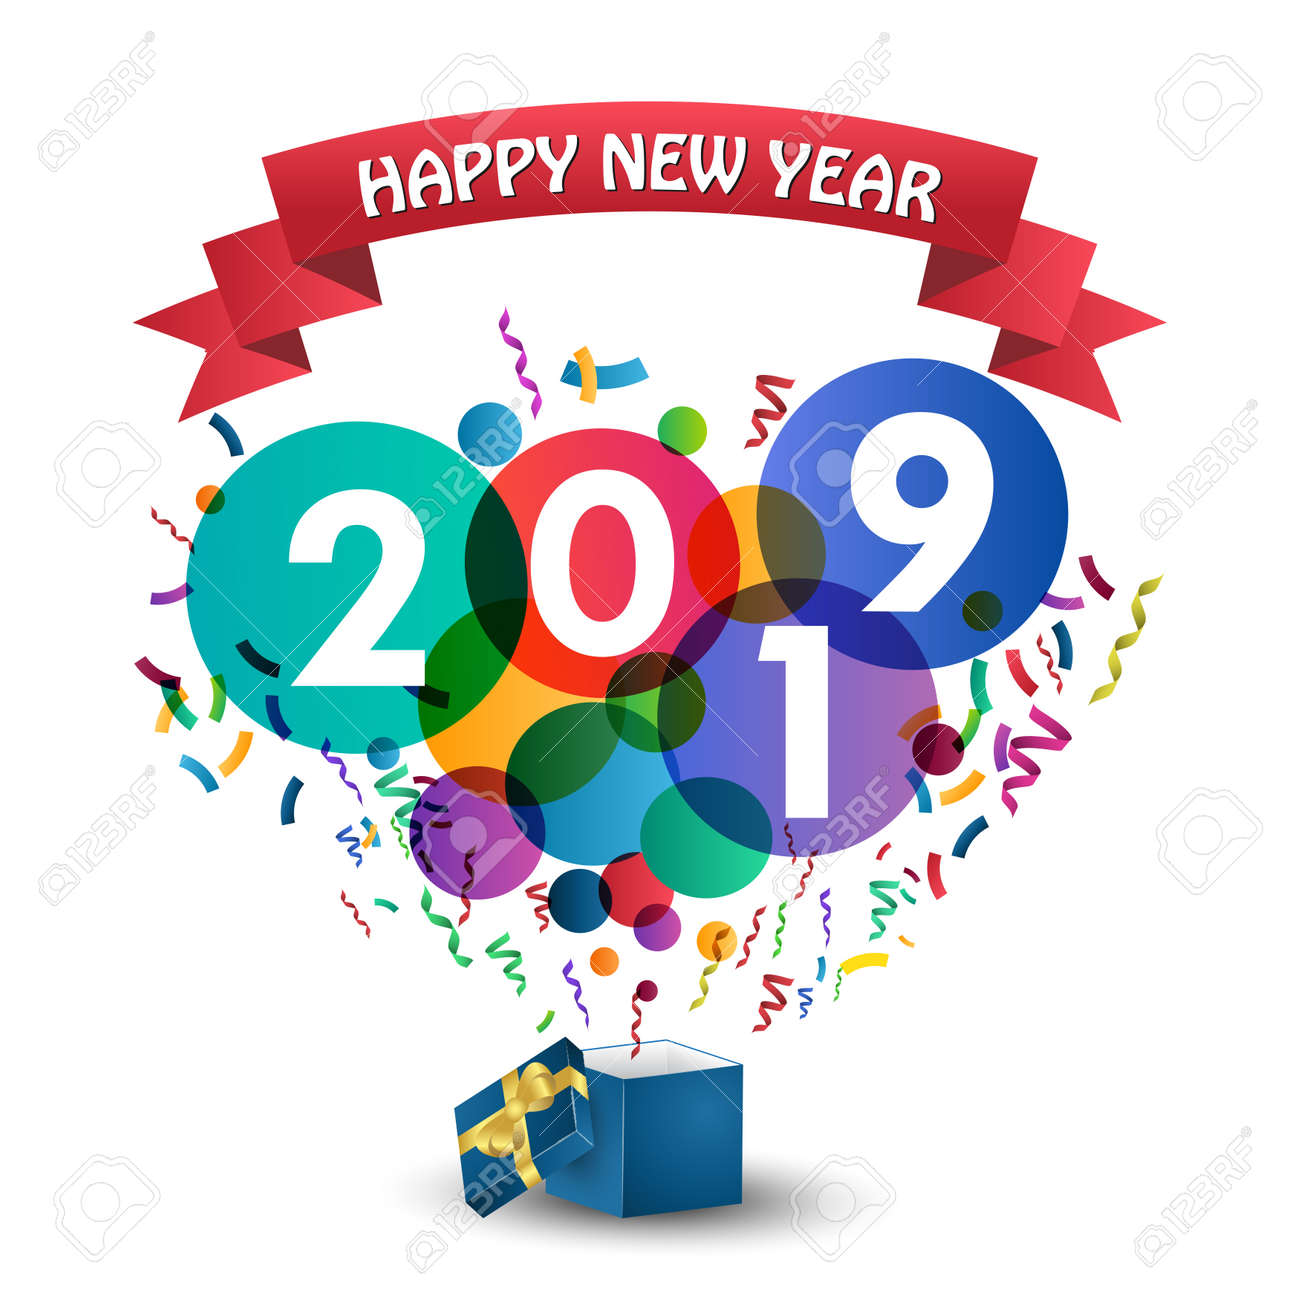 Happy new Year 2019 celebration with gift box. - 108535802